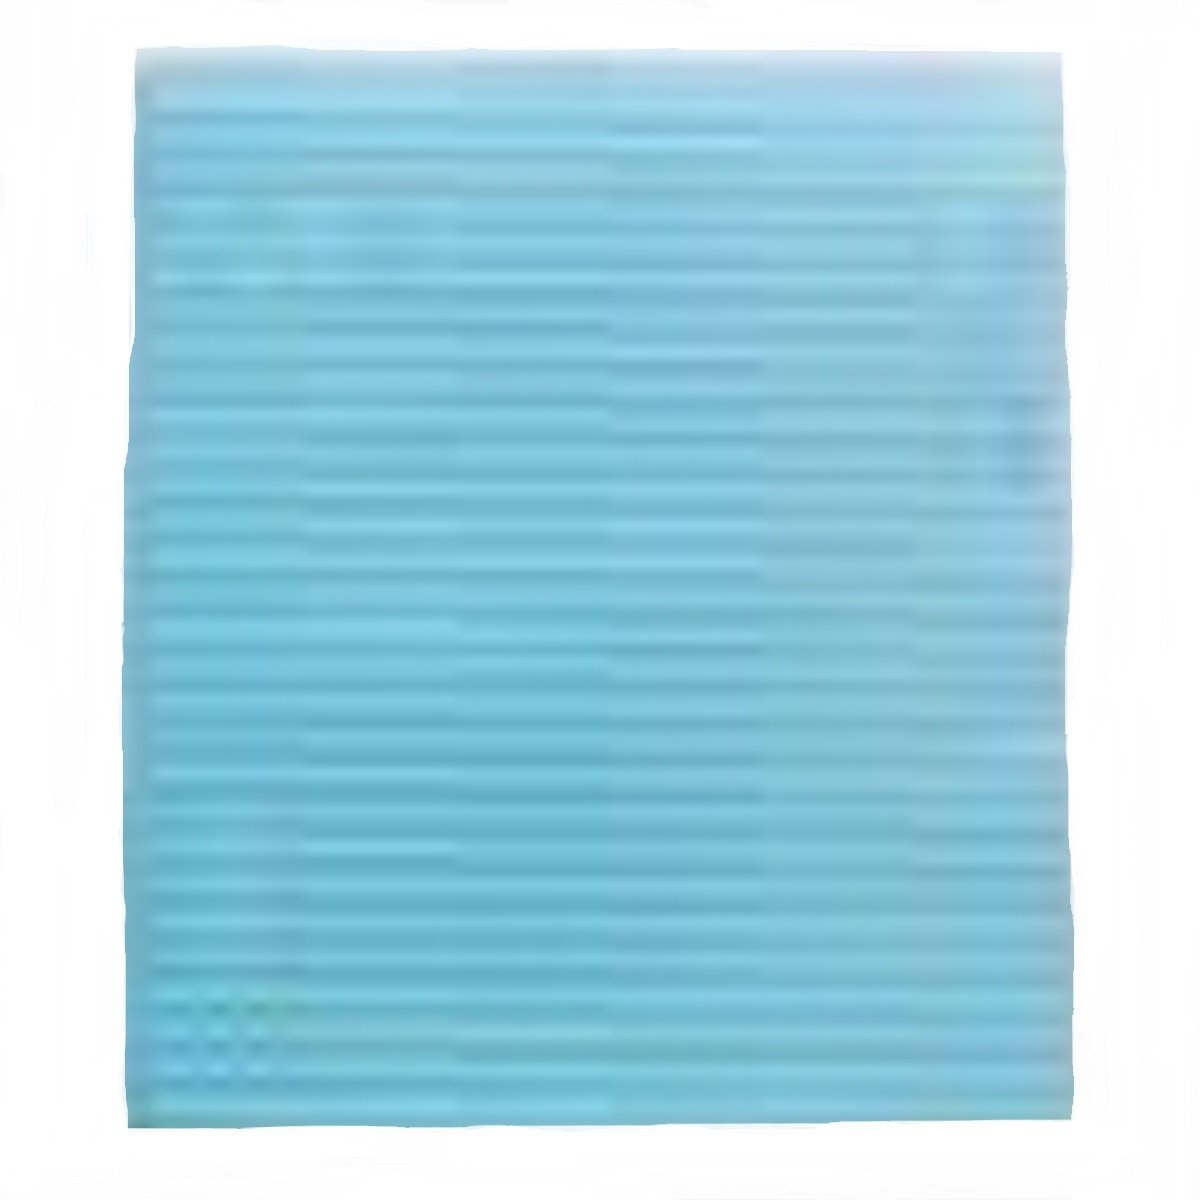 McKesson 18-867 Procedure Towel, 2-Ply/Poly, Blue, 13'' Width, 18'' Length (Pack of 500) by McKesson